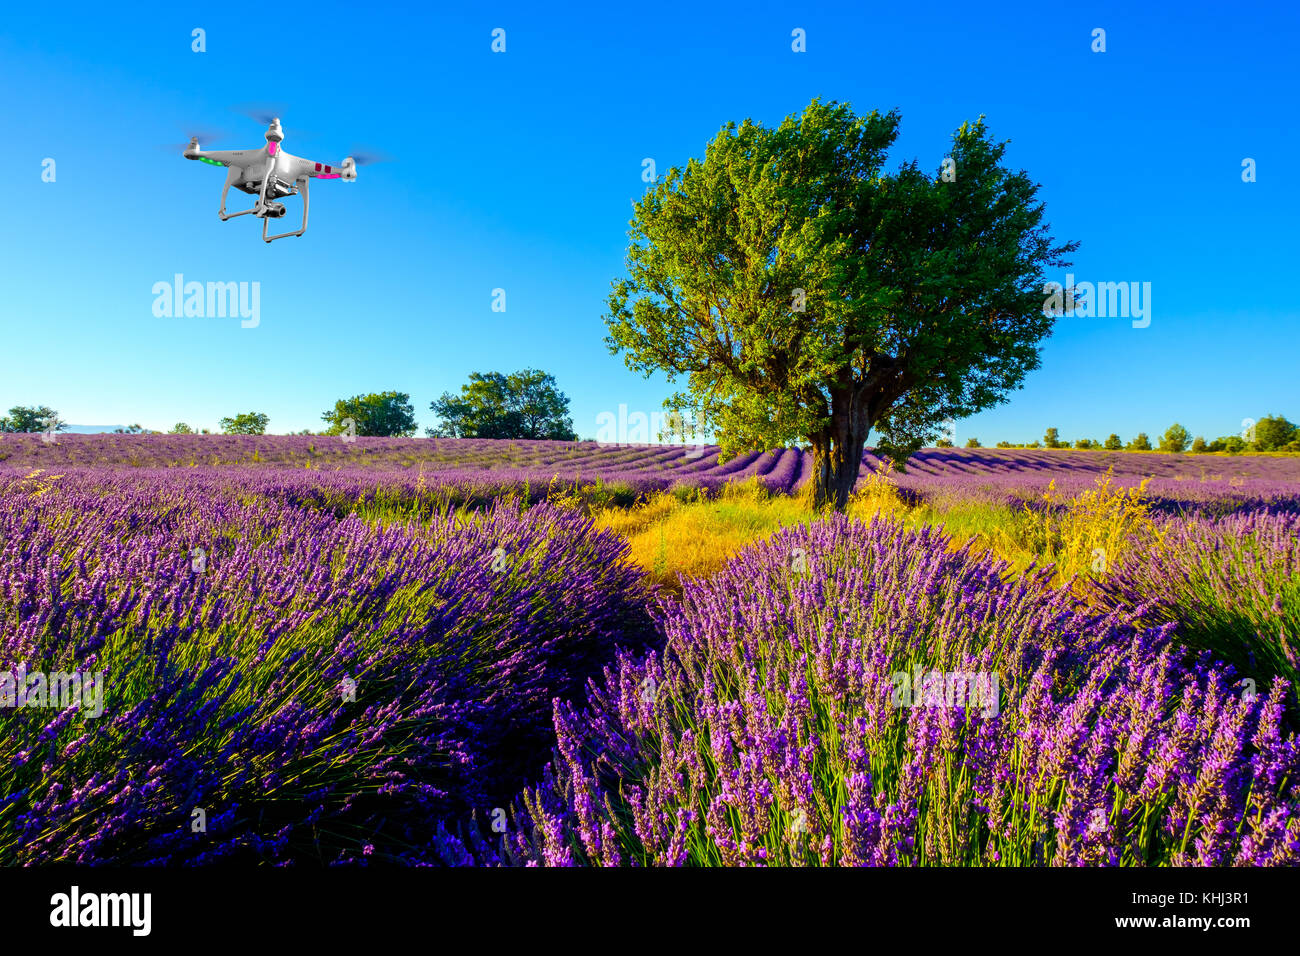 Tree in a field at Provence - Stock Image